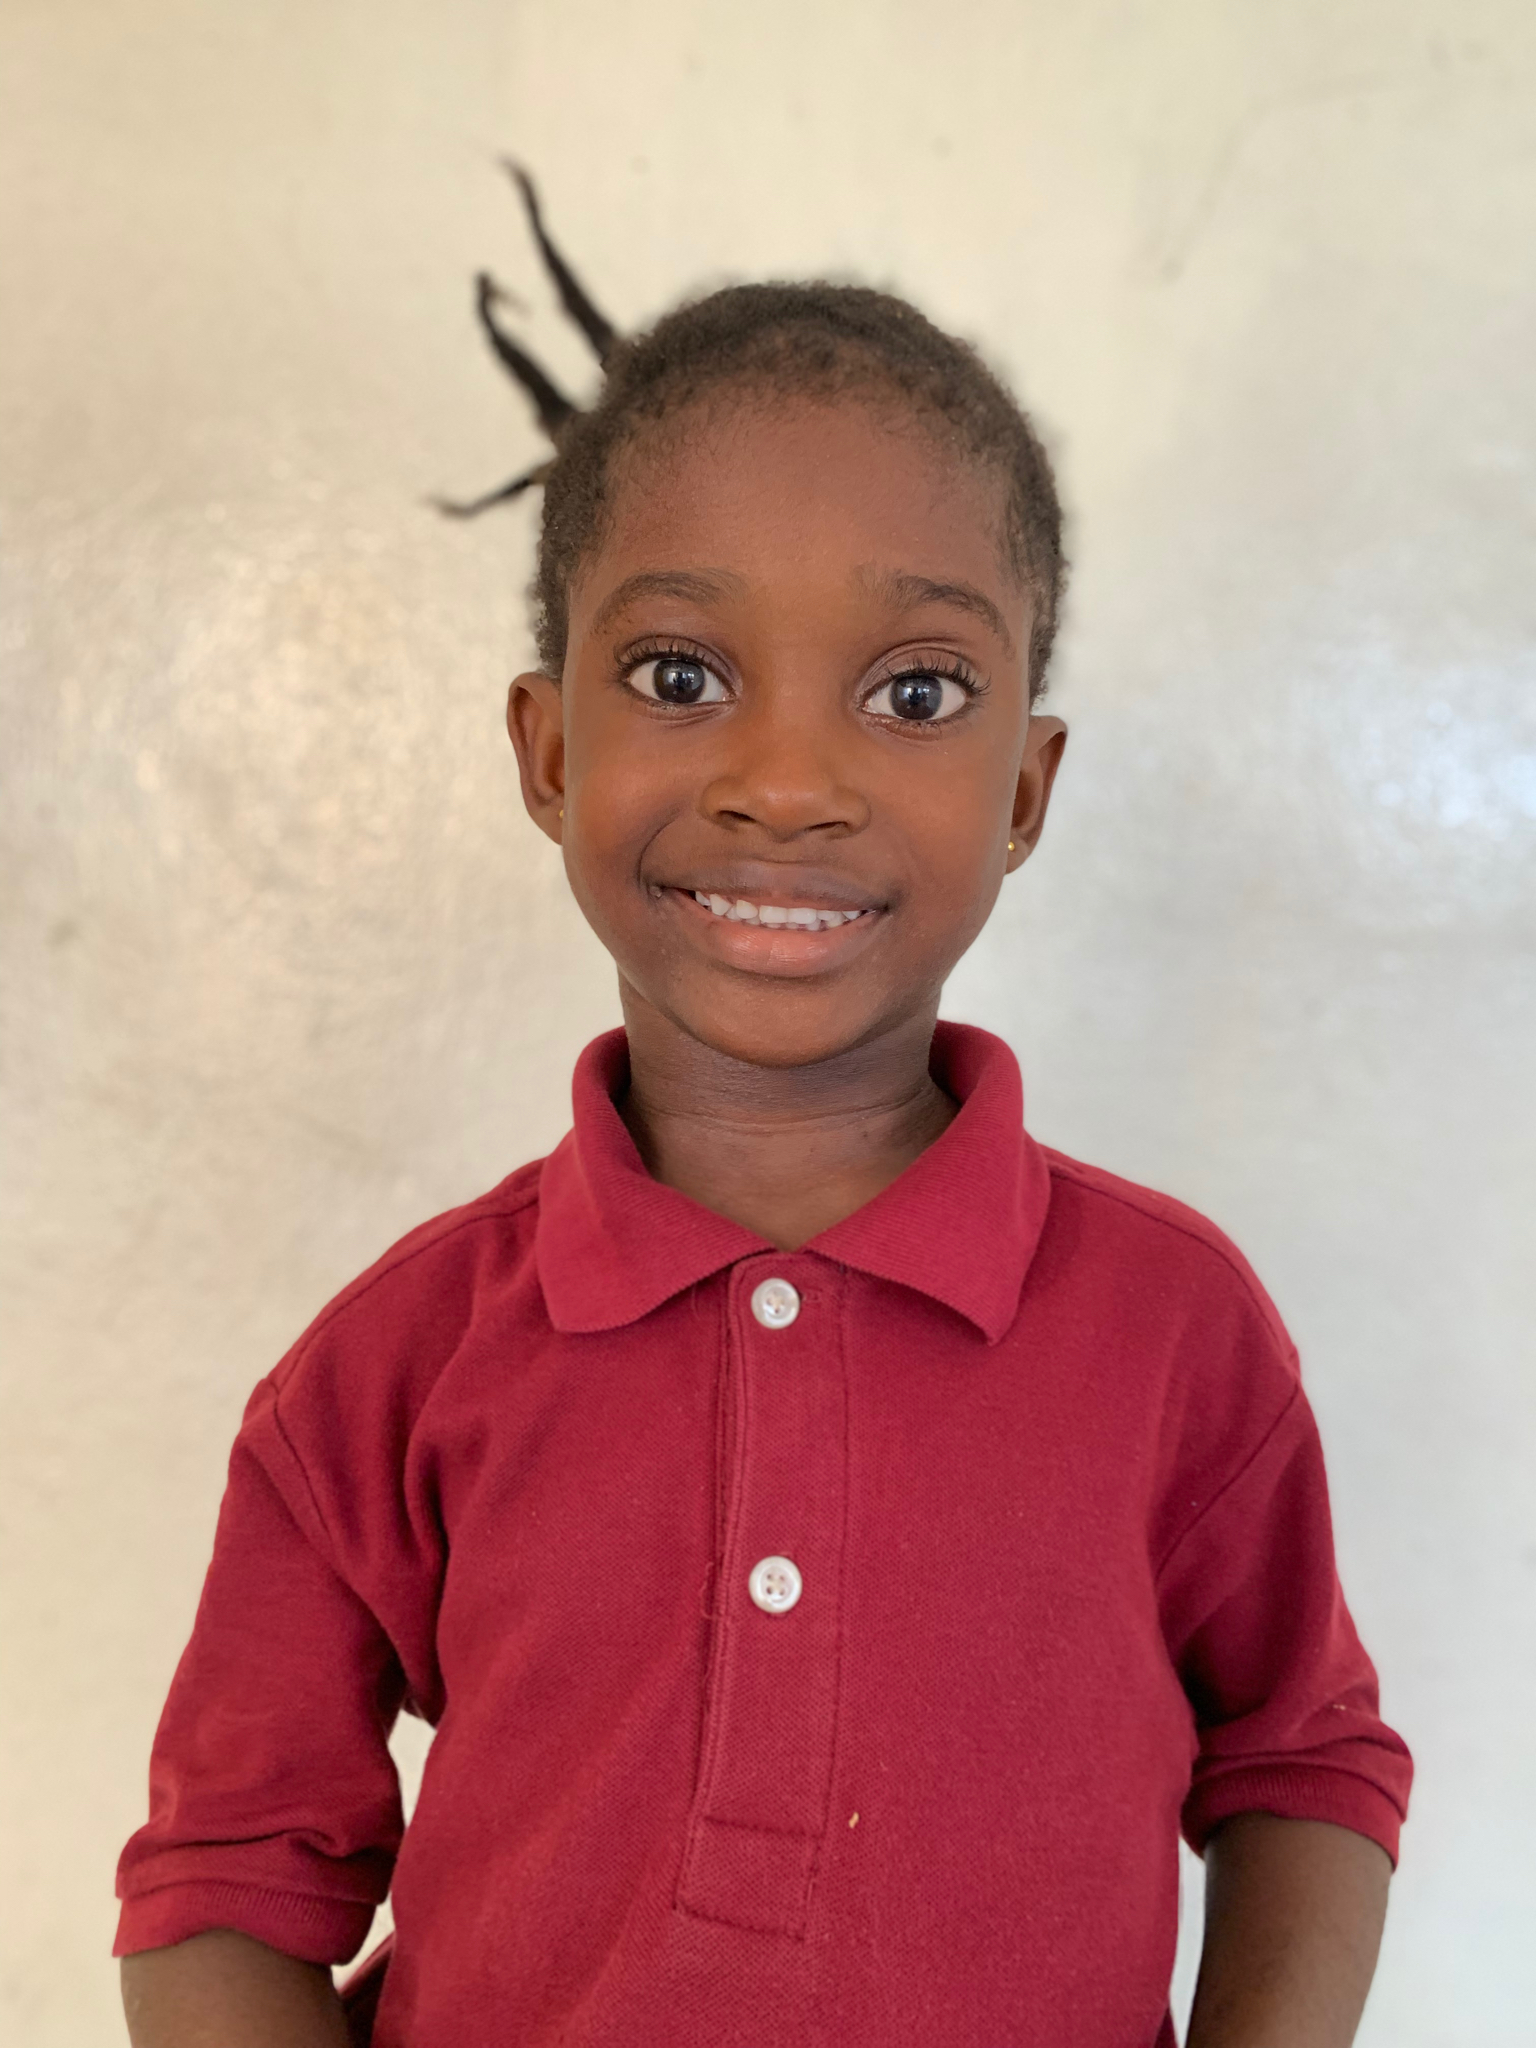 Hello, my name is Emmanuella Fokofo. - Emmanuella is a 4-year-old girl.Emmanuella lives with her parents, two brothers, and one sister; and loves cats, puzzles, and the color blue.